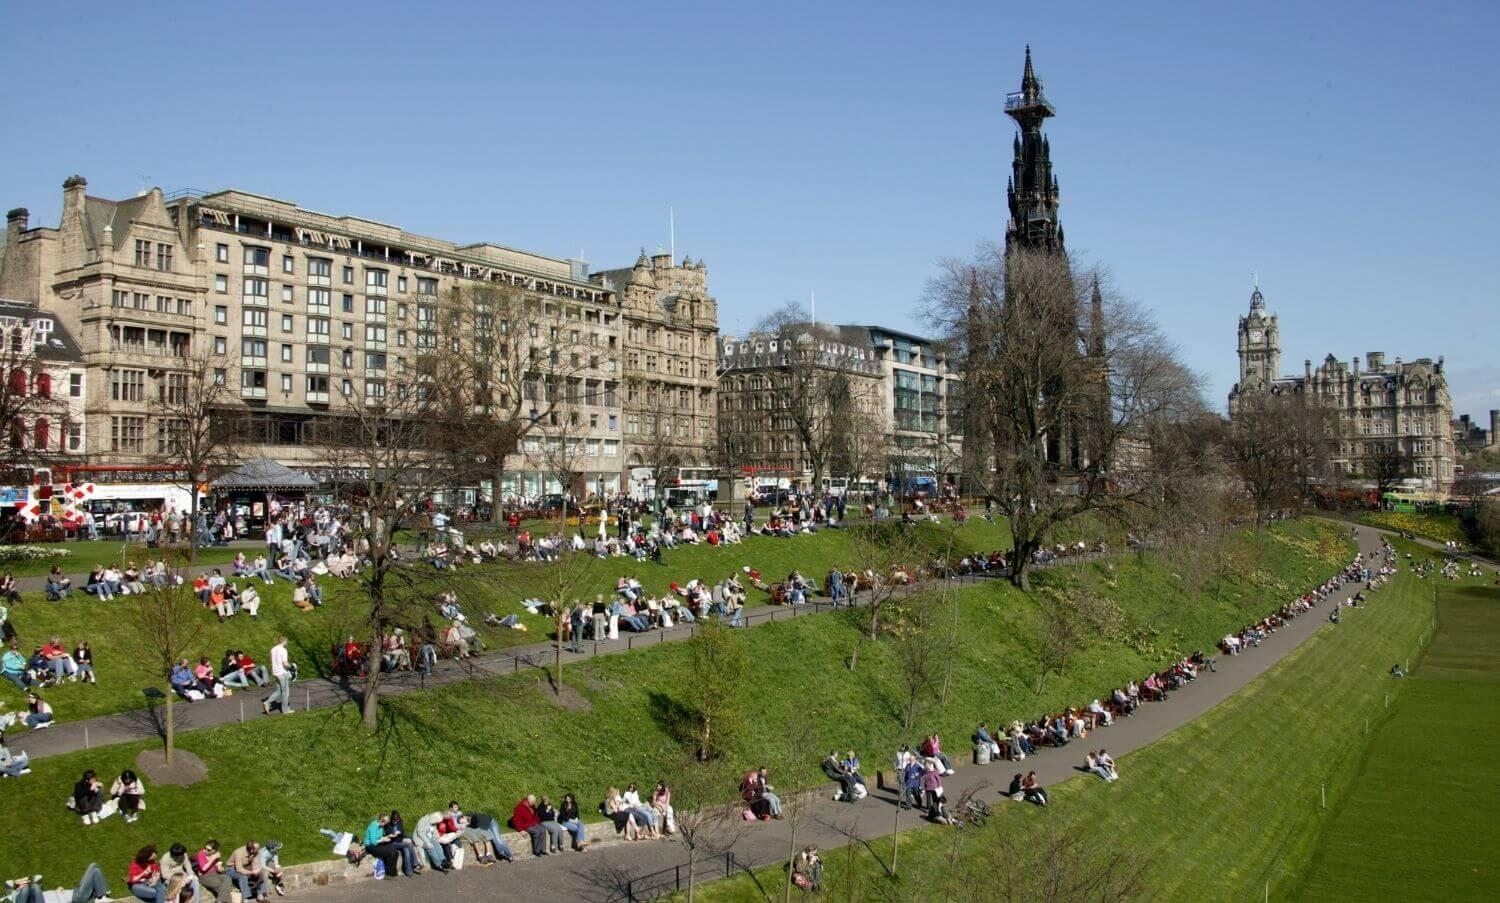 People sitting in the sun in East Princes Street Gardens.